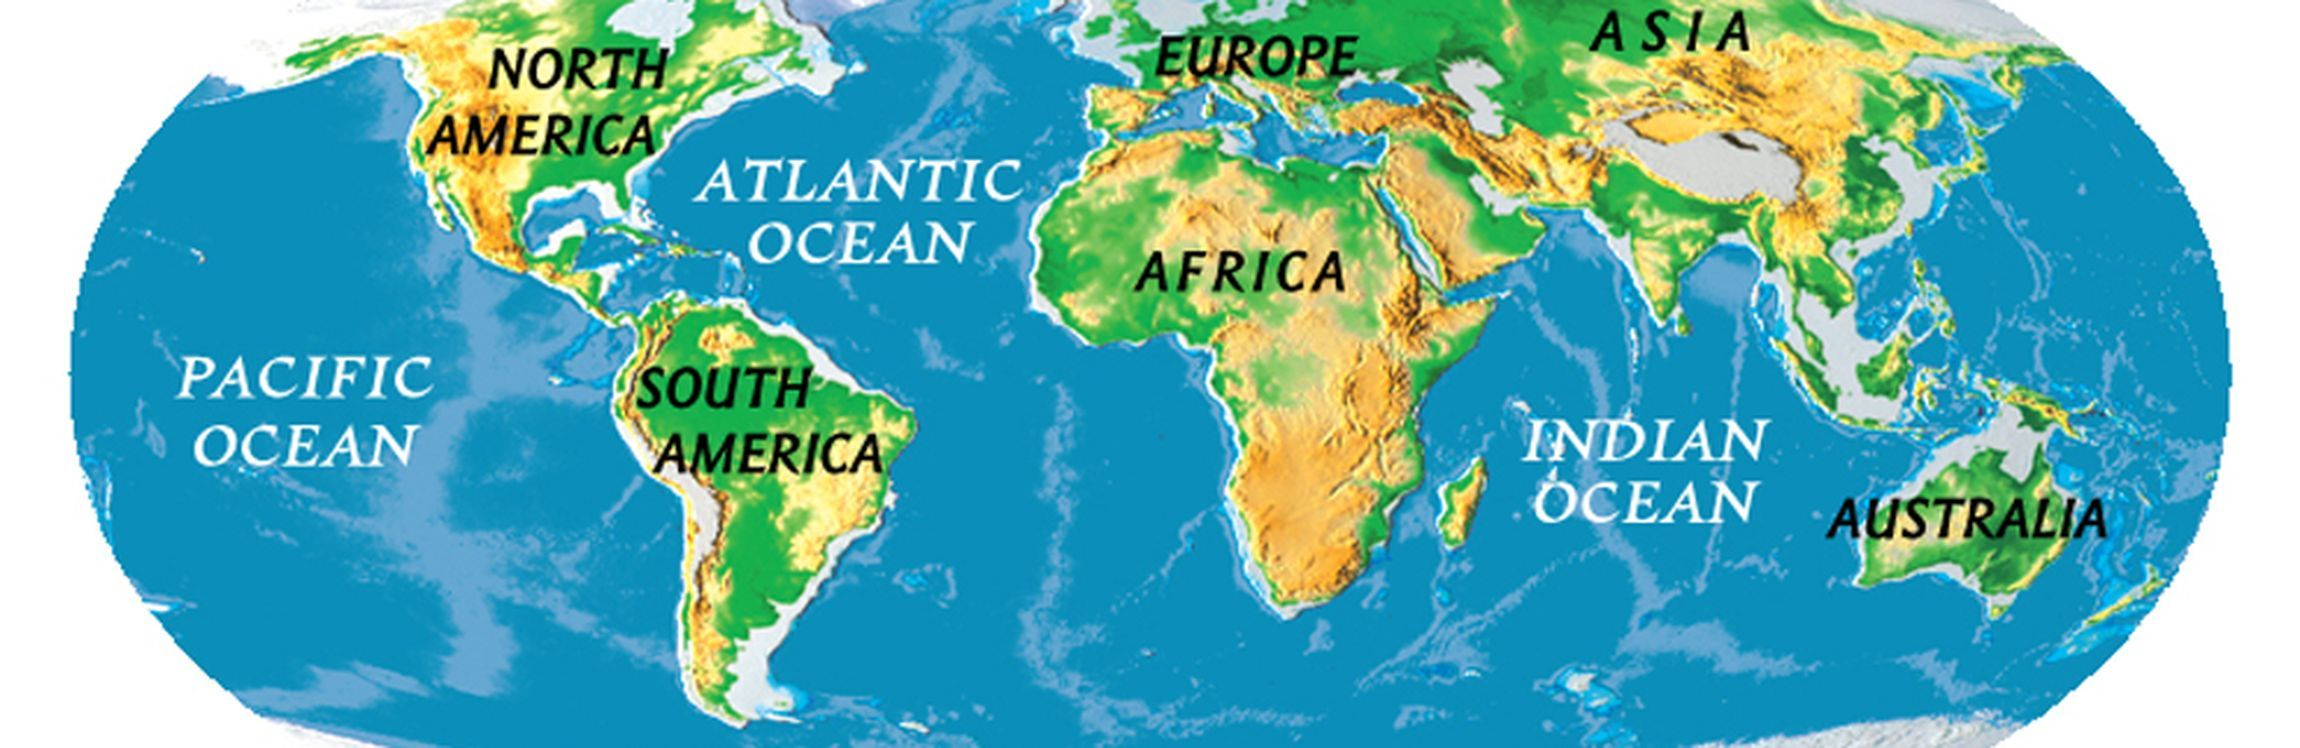 continents - National Geographic Society